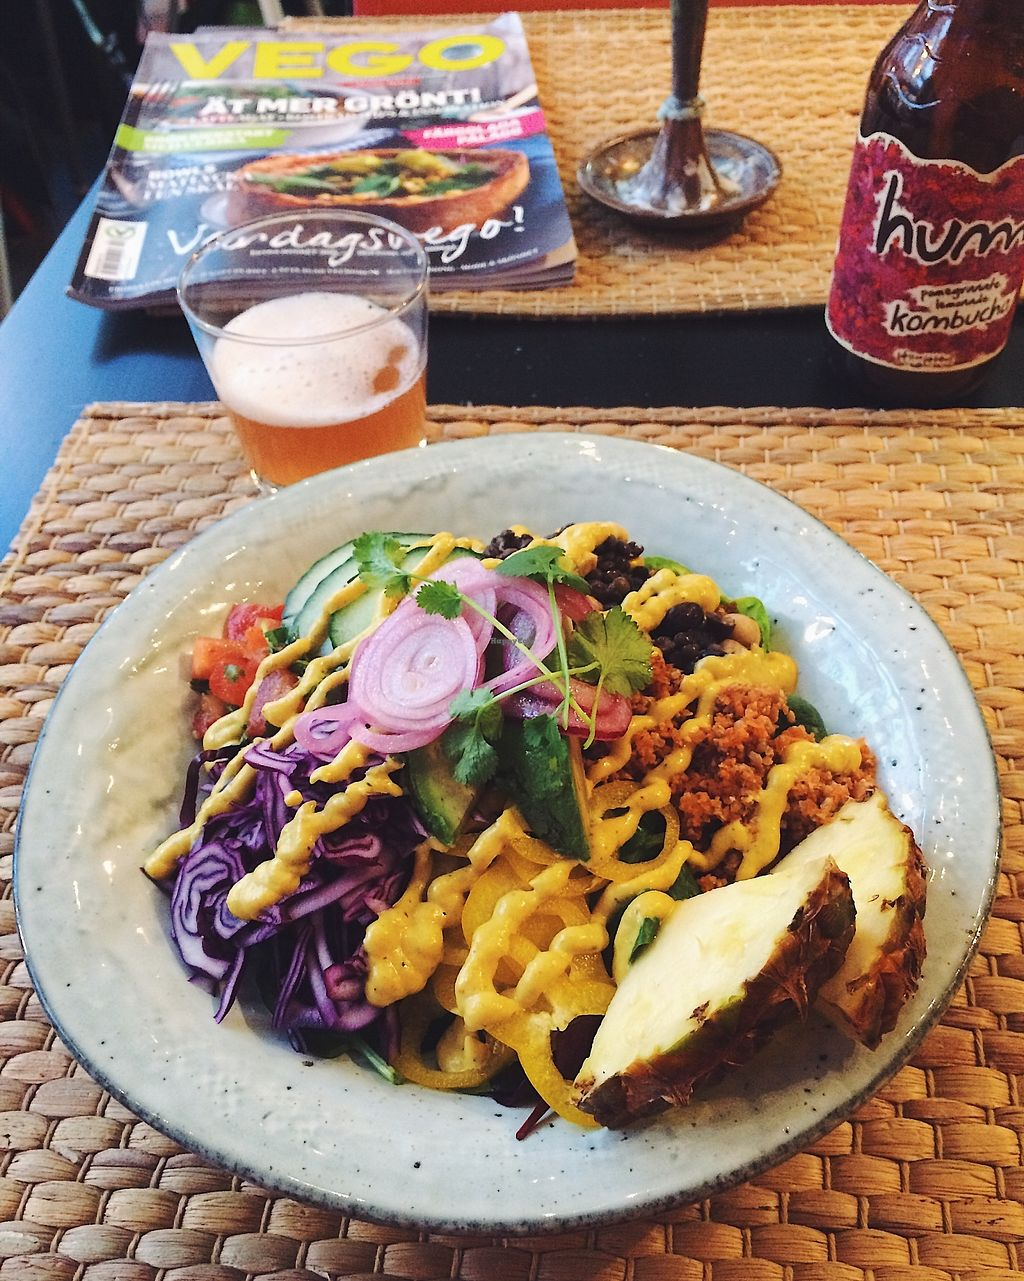 """Photo of Ra och sa  by <a href=""""/members/profile/treemelody"""">treemelody</a> <br/>Raw taco bowl. Yum!  <br/> January 27, 2018  - <a href='/contact/abuse/image/102750/351604'>Report</a>"""